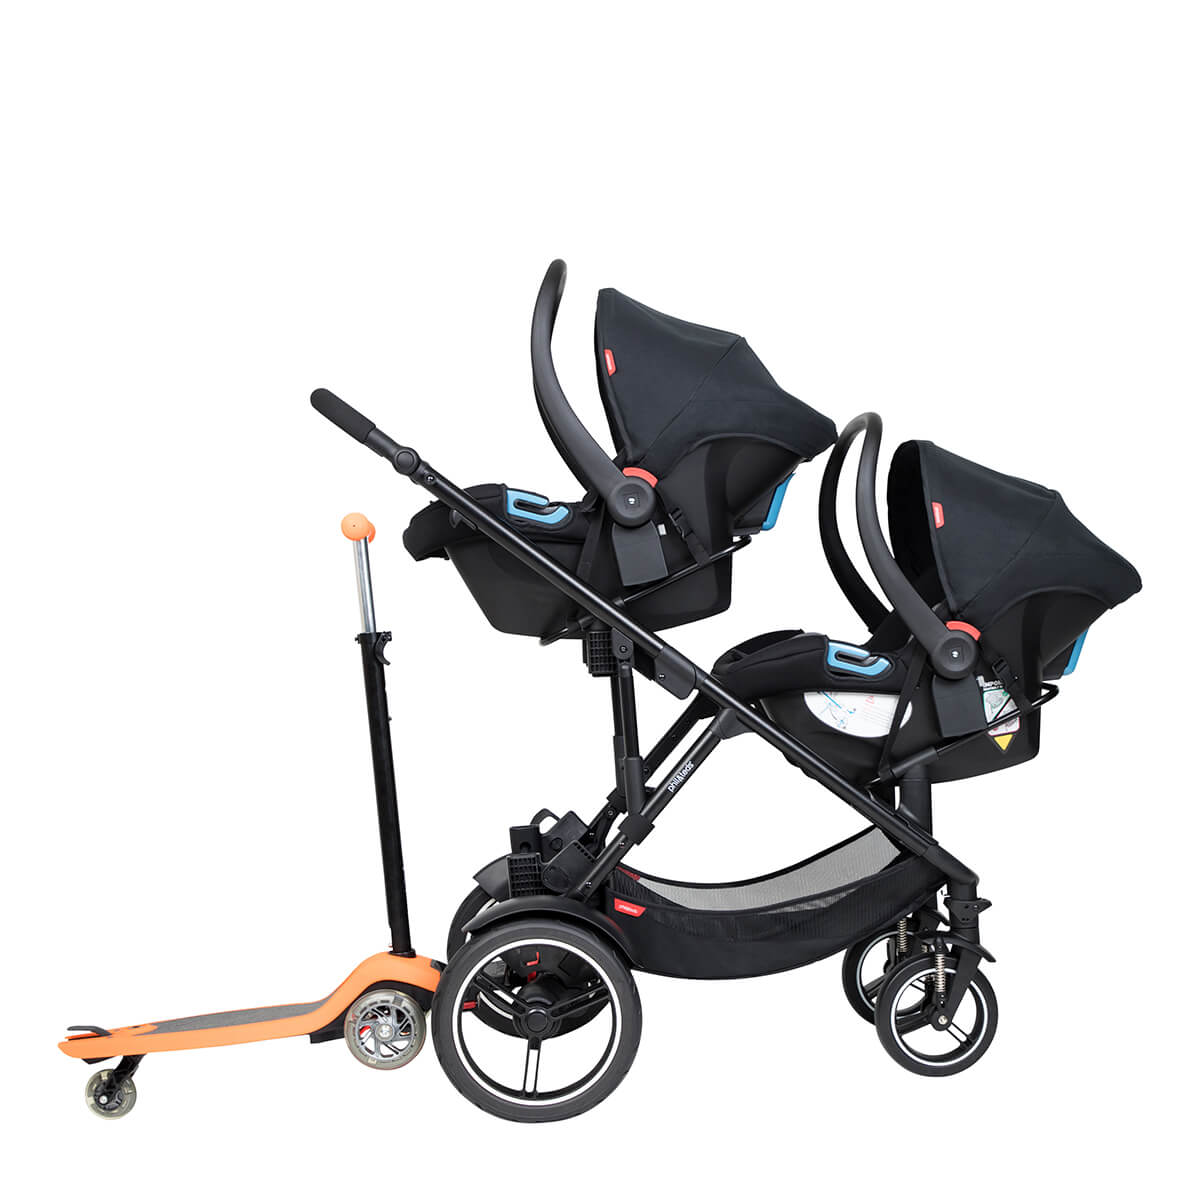 https://cdn.accentuate.io/4513464516704/19440482418872/philteds-voyager-buggy-with-double-travel-systems-and-freerider-stroller-board-in-the-rear-v1633401129239.jpg?1200x1200